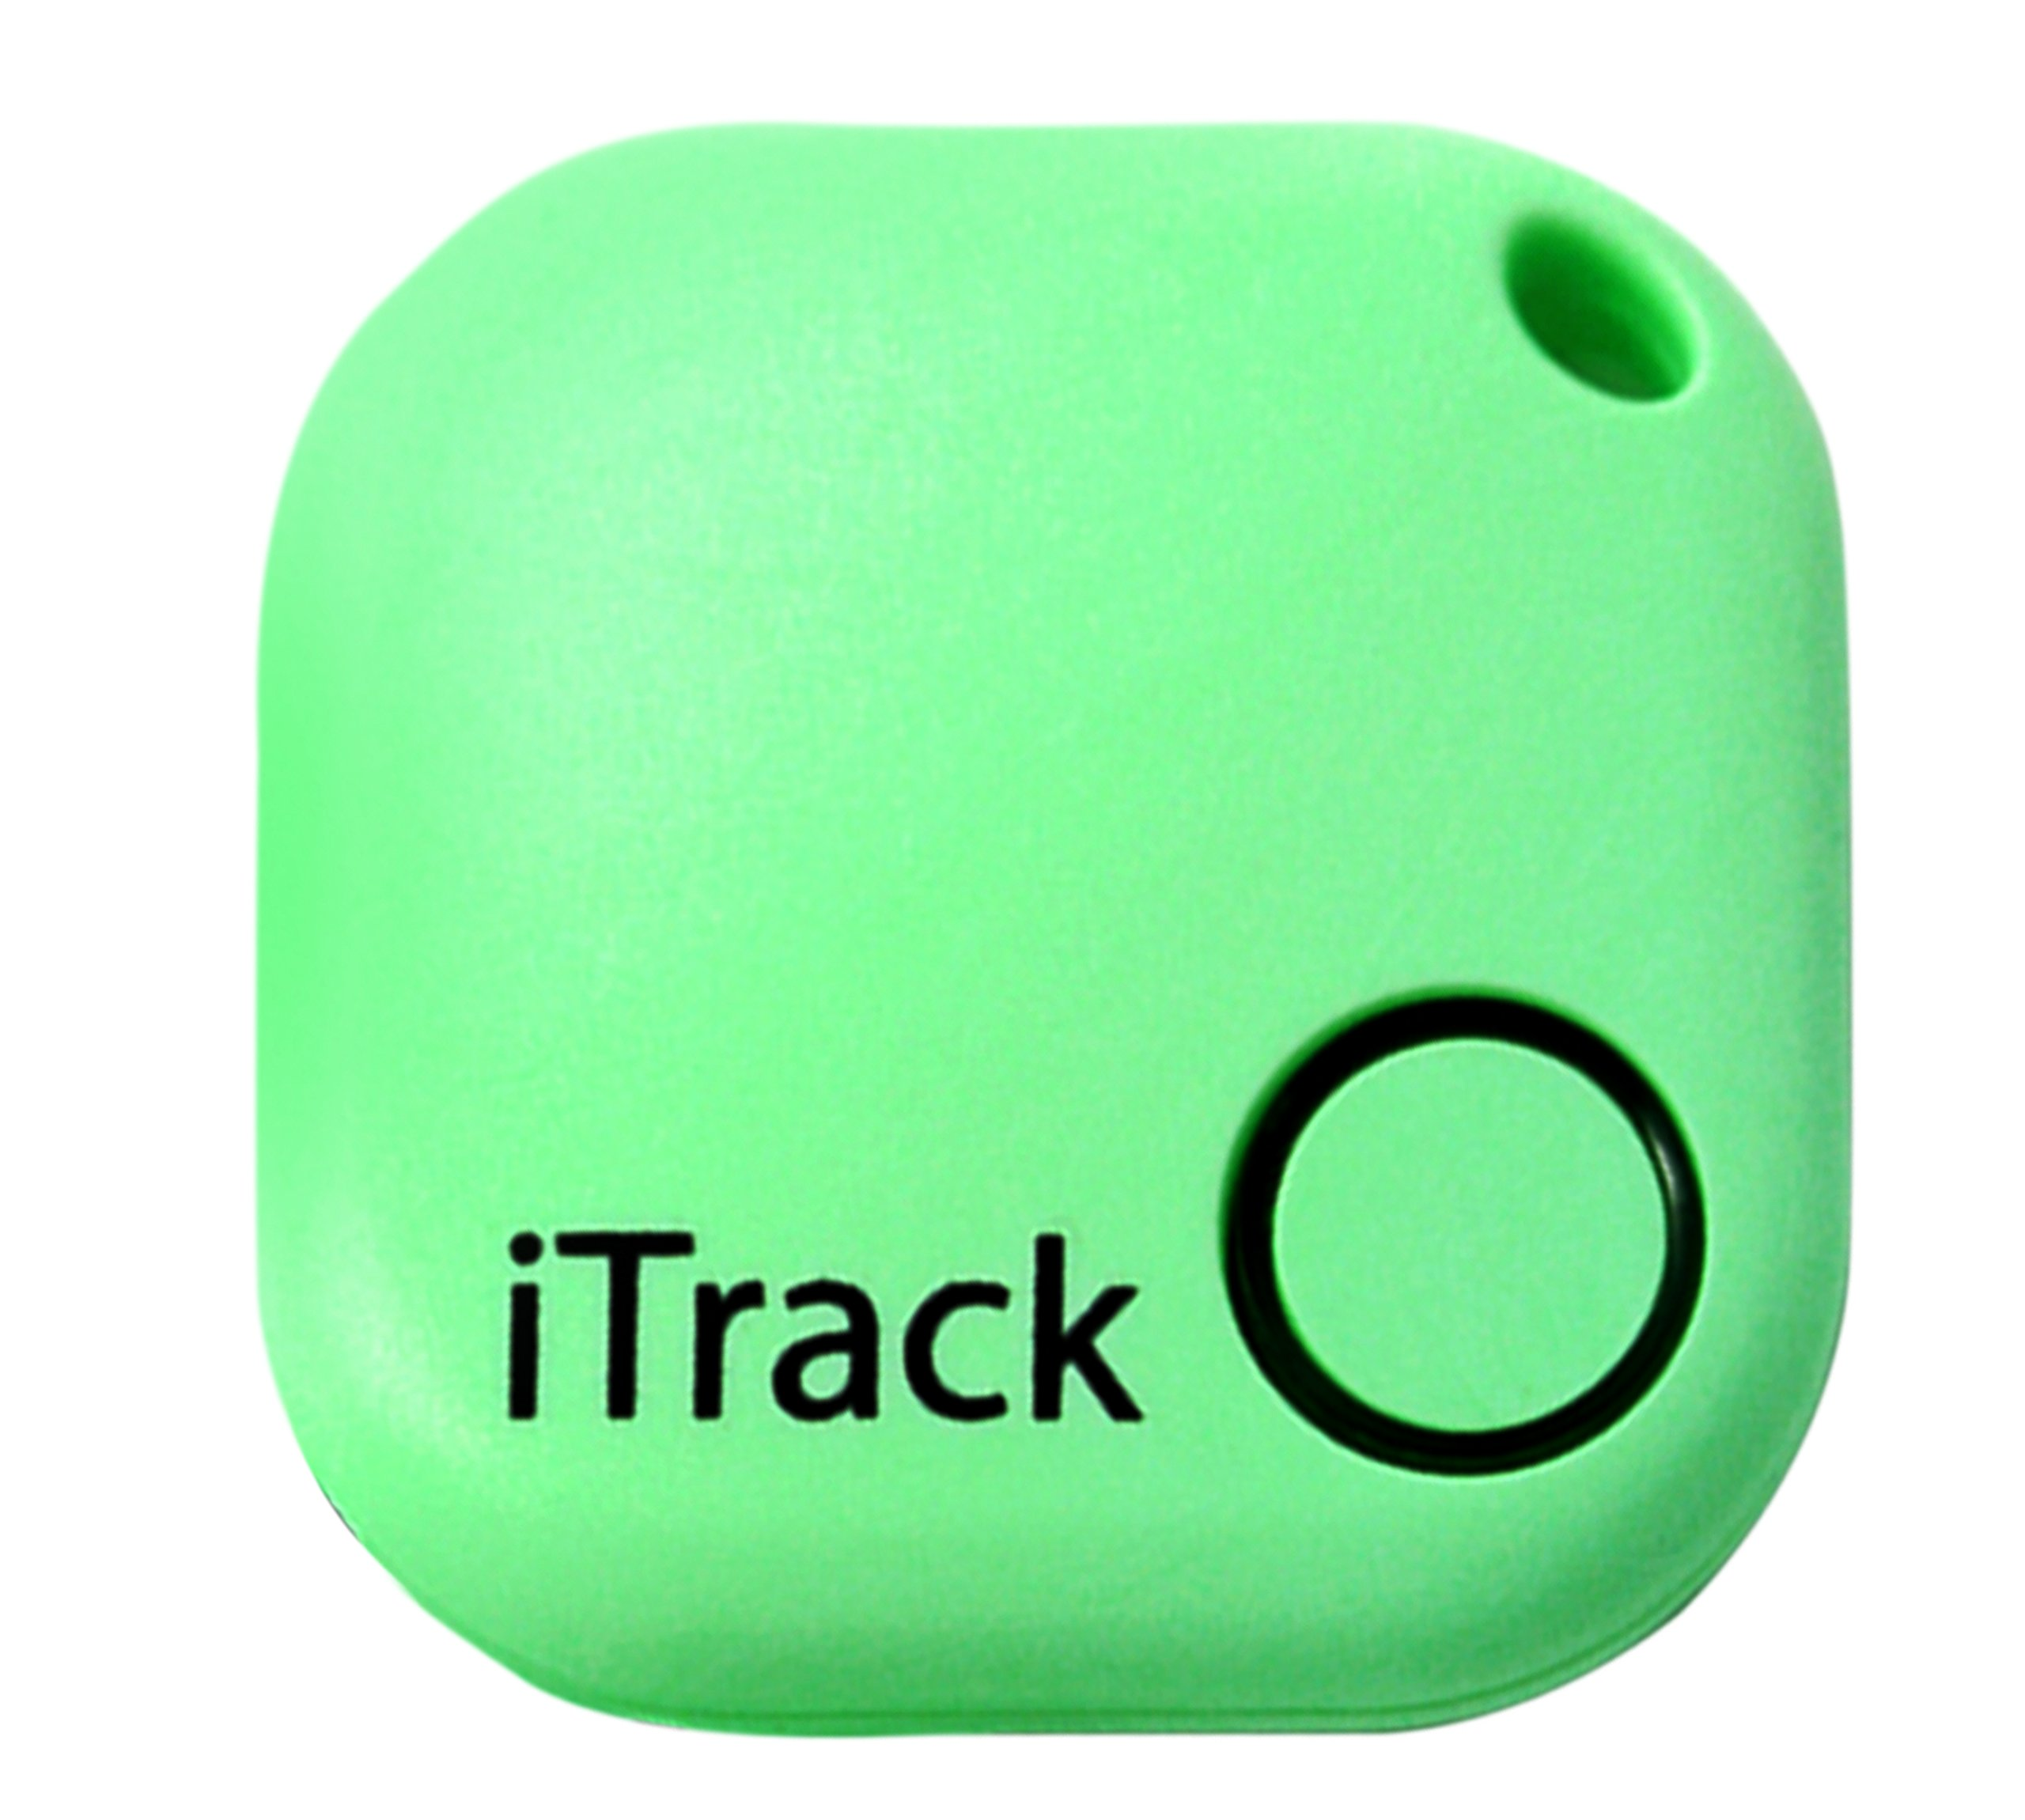 Key Finder Bluetooth Anti-Lost Device. Tracking Device. Bluetooth Tracking Tag. Key Finder With App. Tracker Device By Rinex.